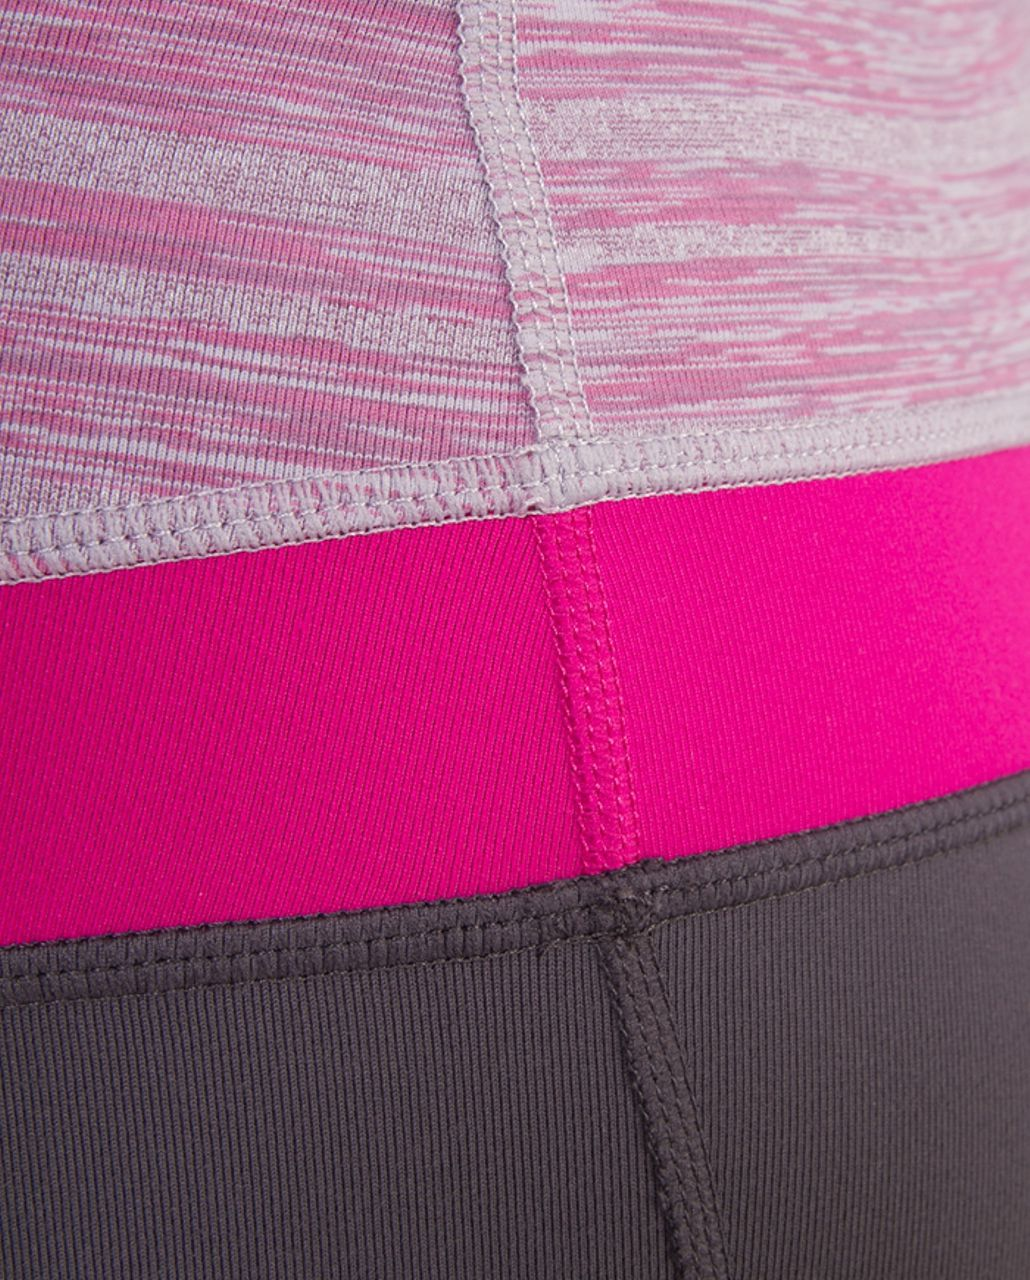 Lululemon Groove Pant (Regular) - Coal /  Muted Mauve Stripes Galore /  Raspberry